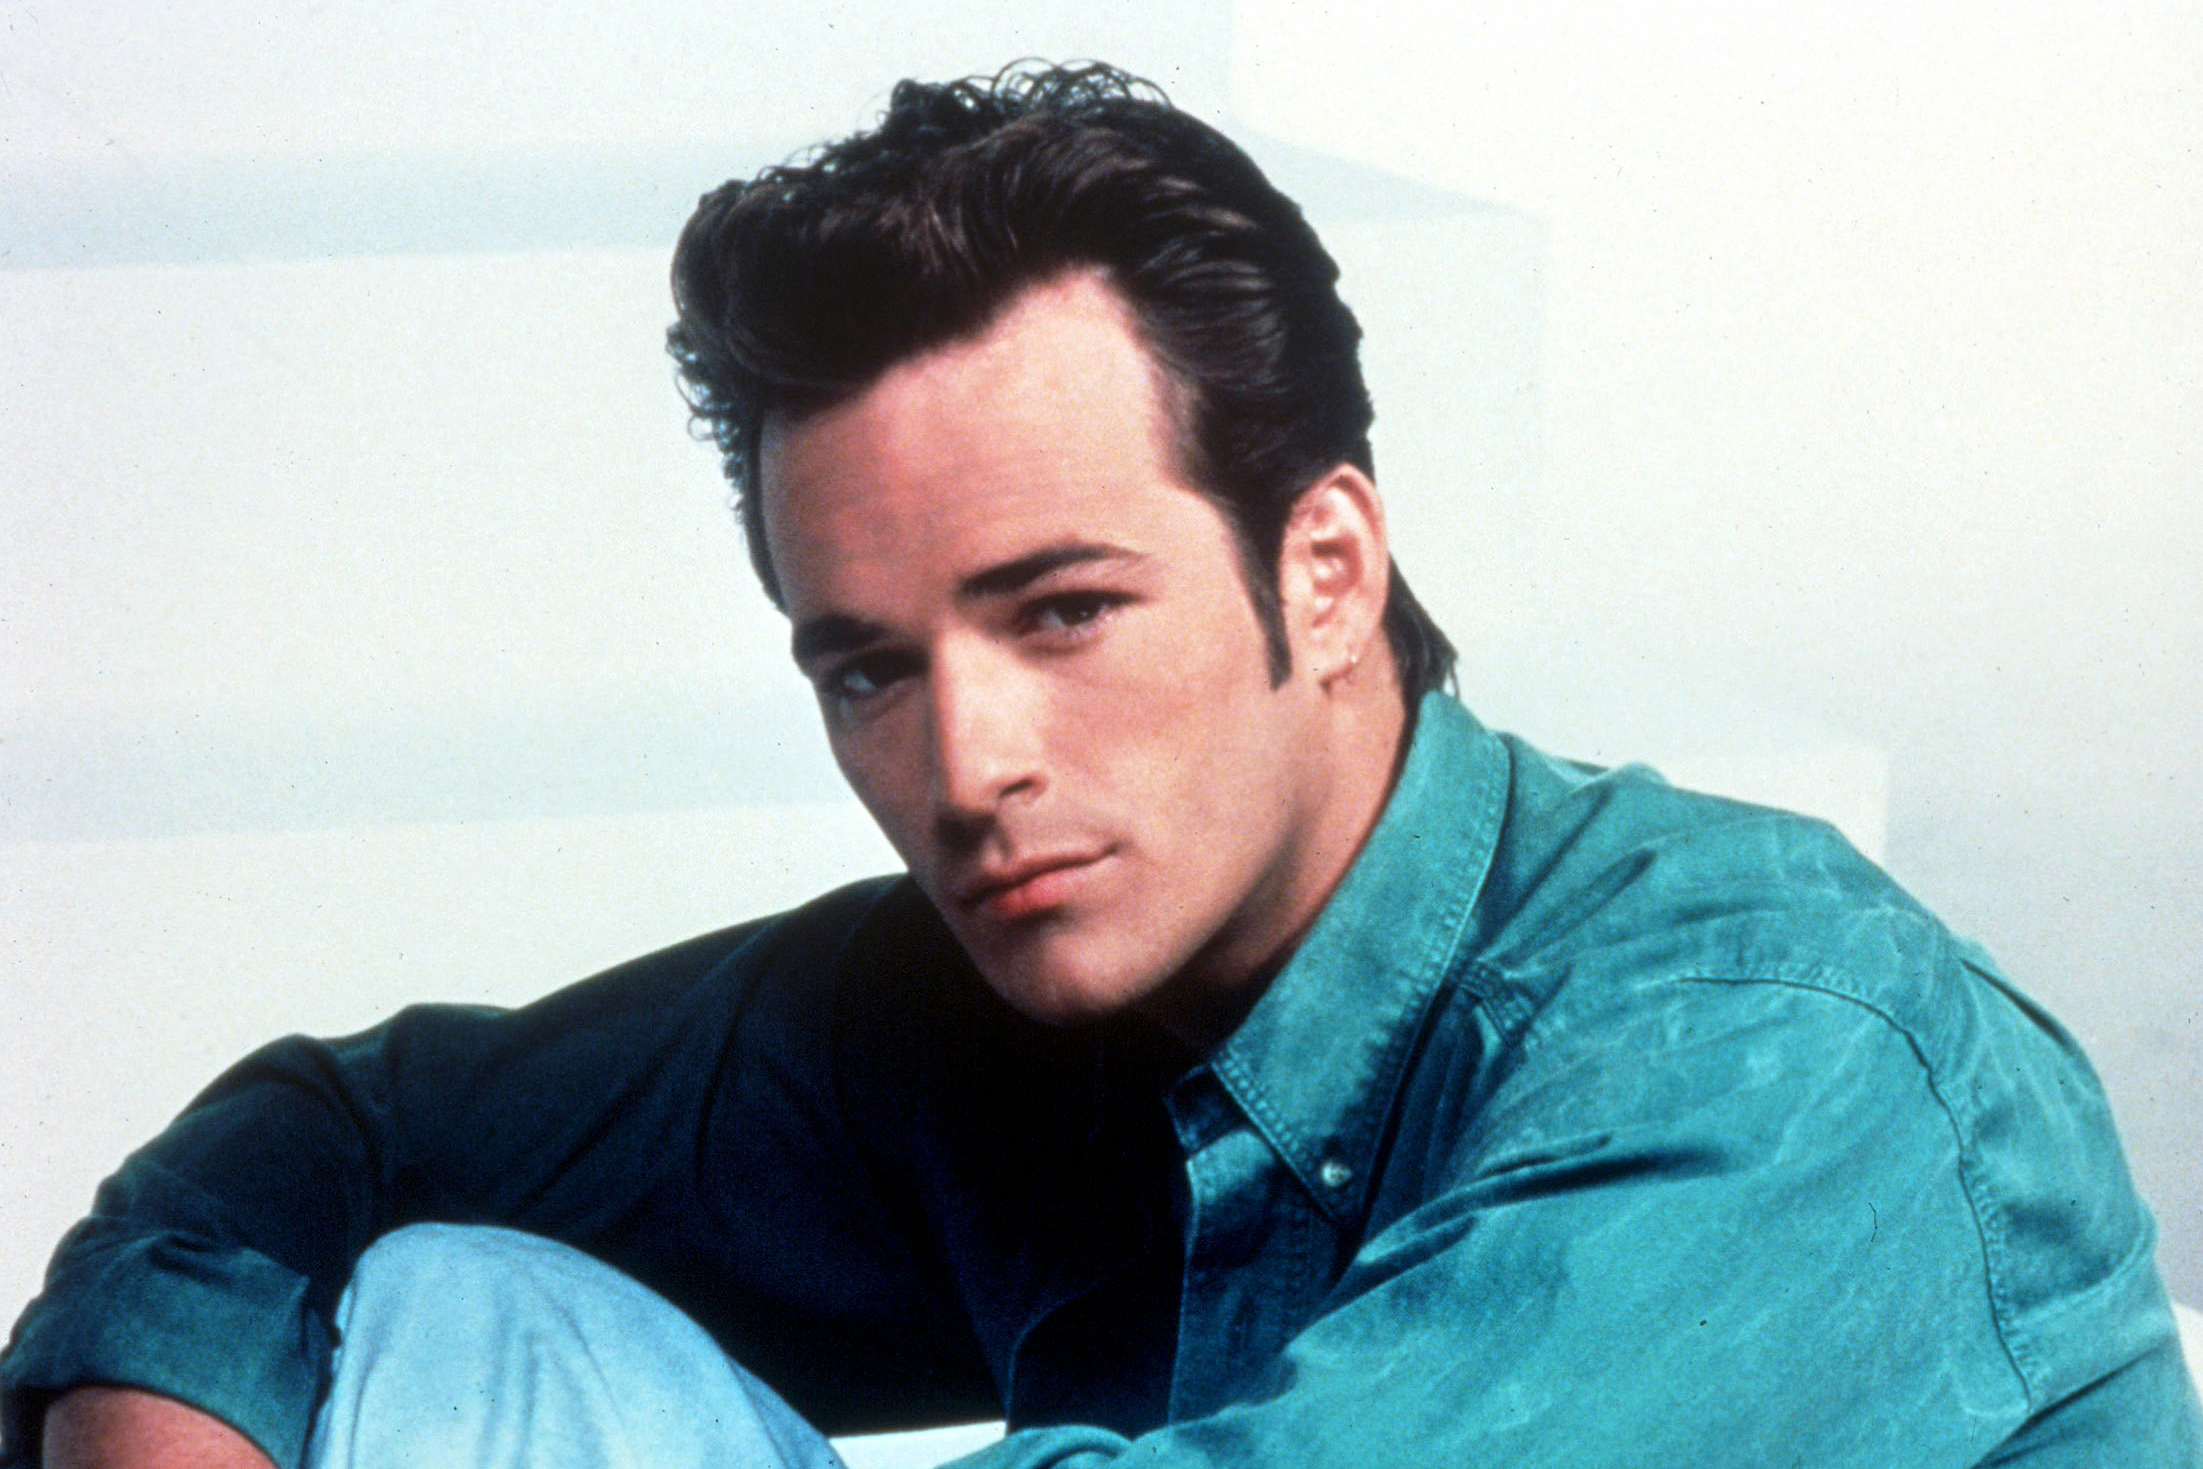 Luke Perry as Dylan McKay on Beverly Hills 90210